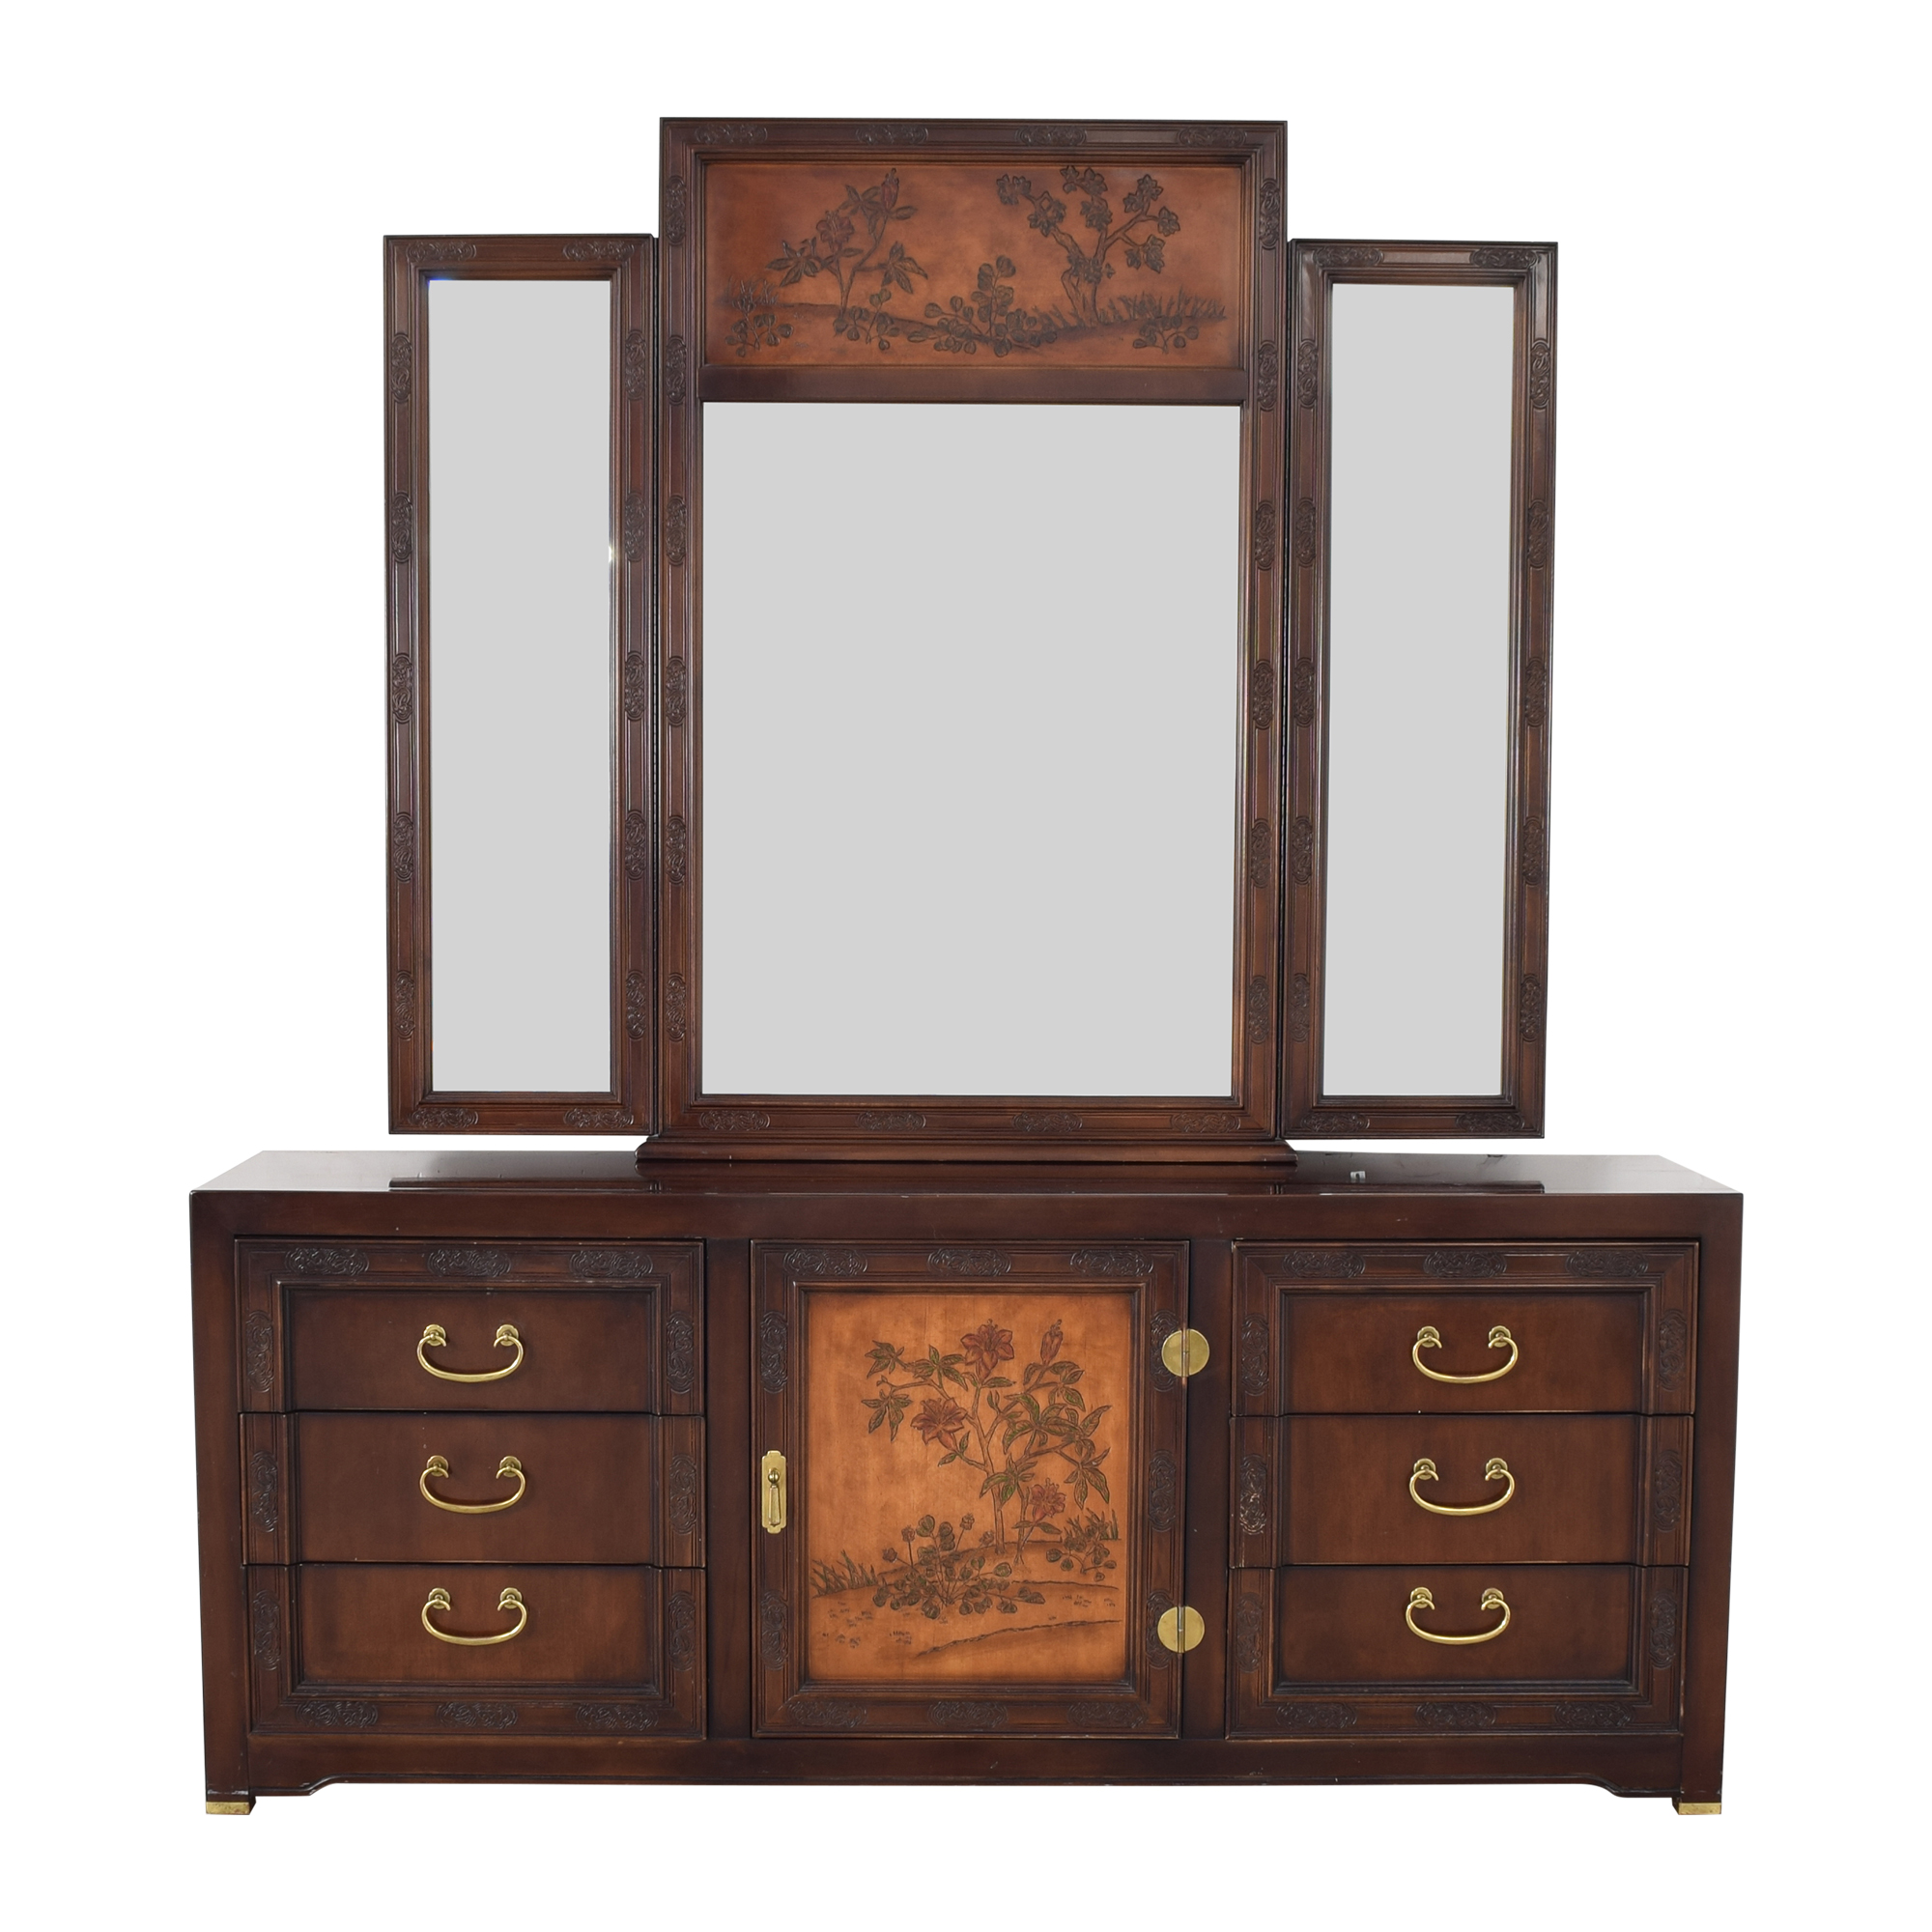 buy Bernhardt Bernhardt Dresser with Mirror online